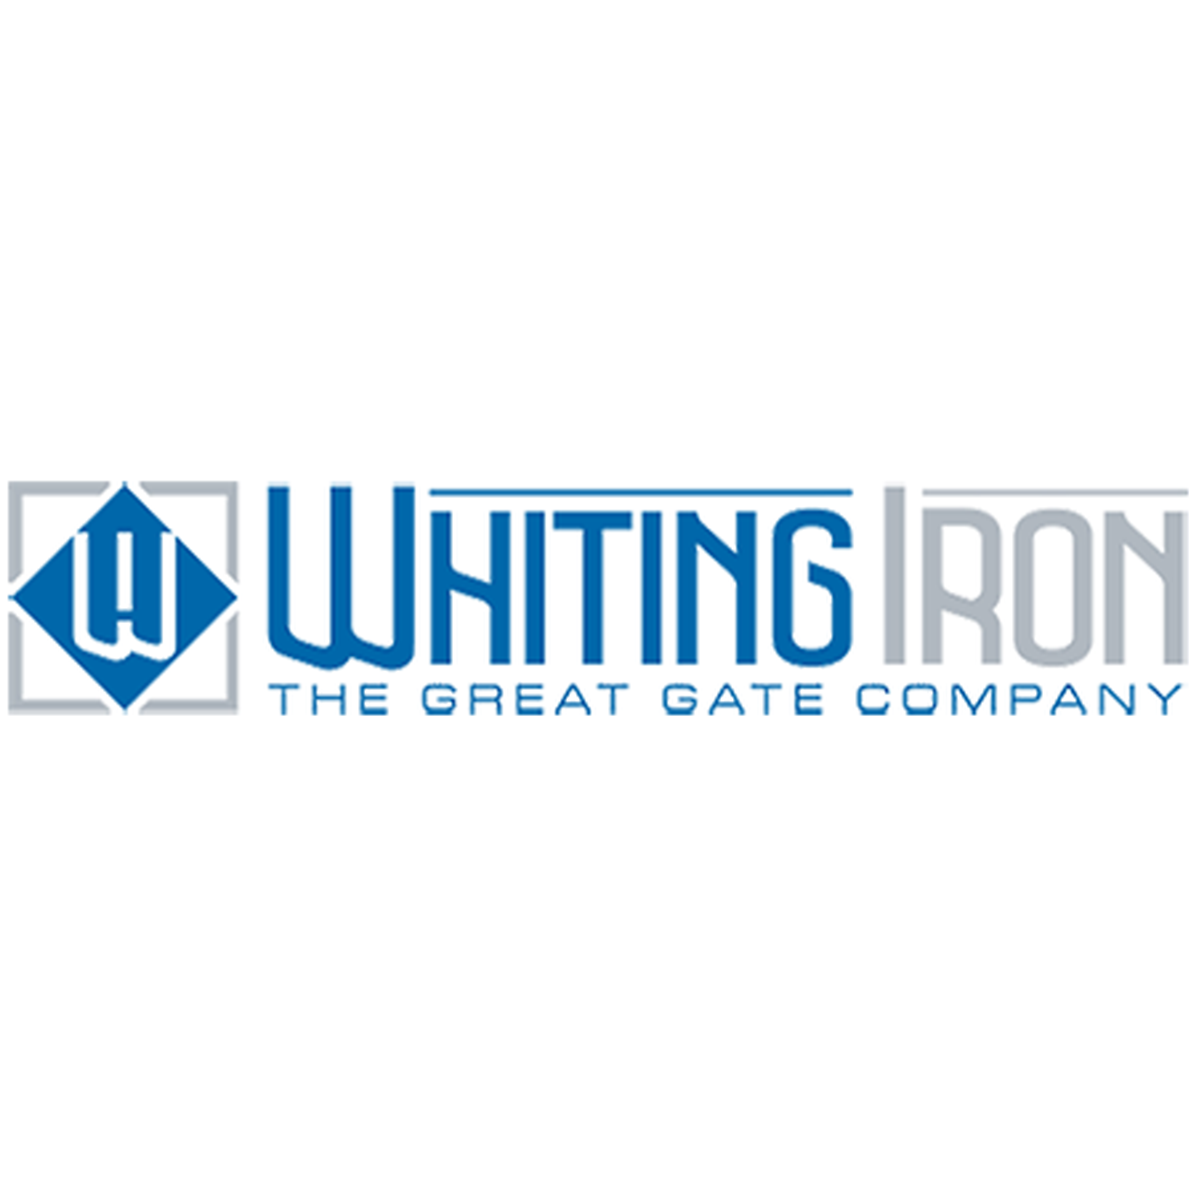 Whiting Iron The Great Gate Company